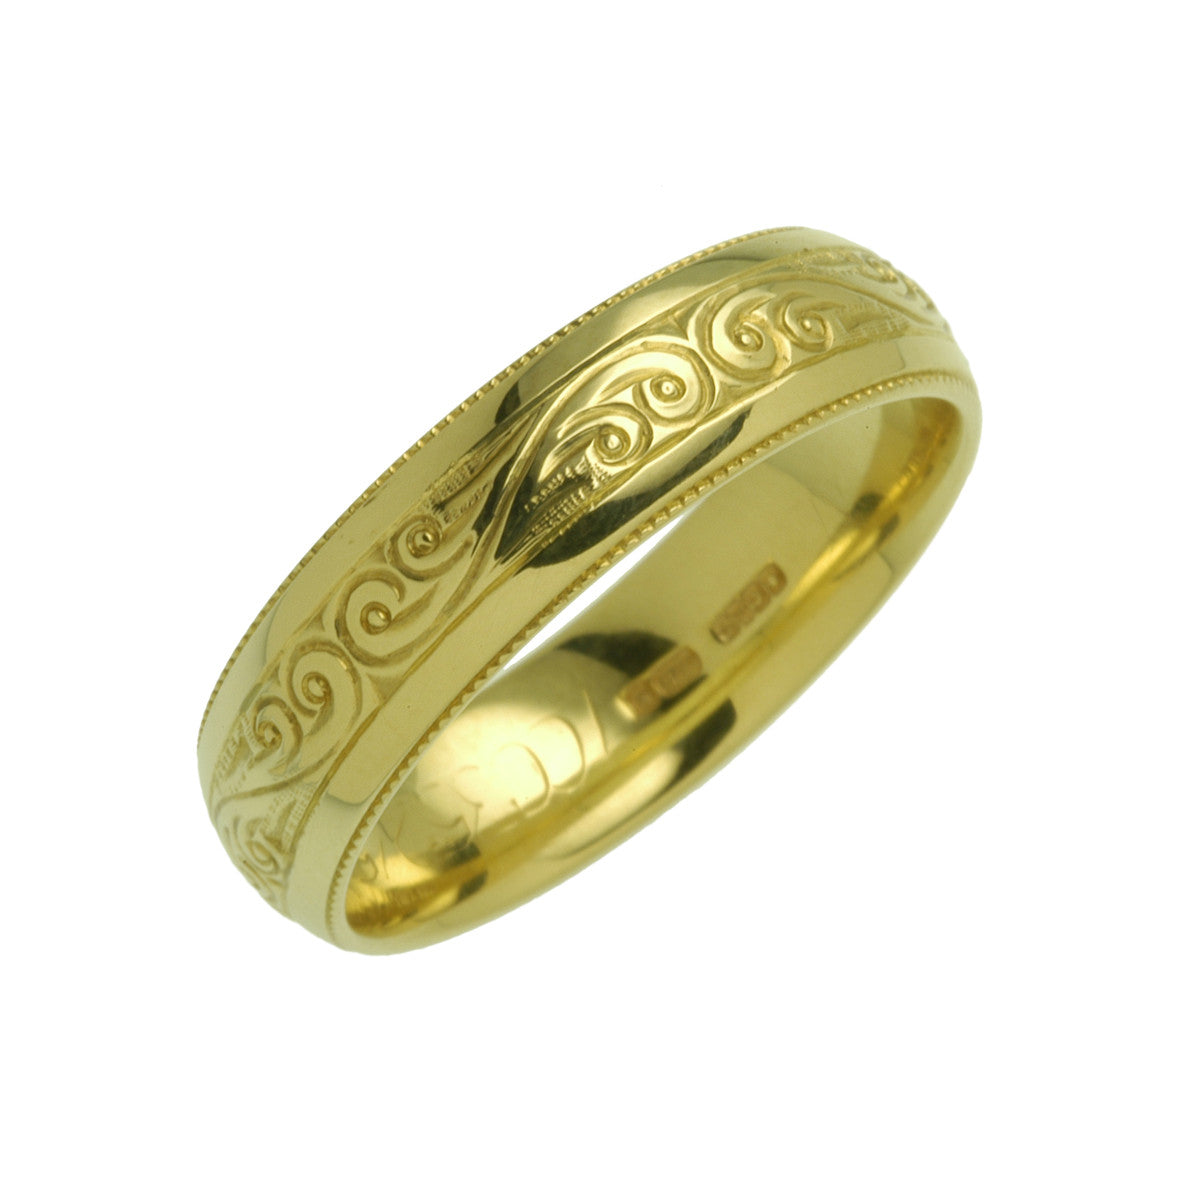 Charles Green Patterned Wedding Ring